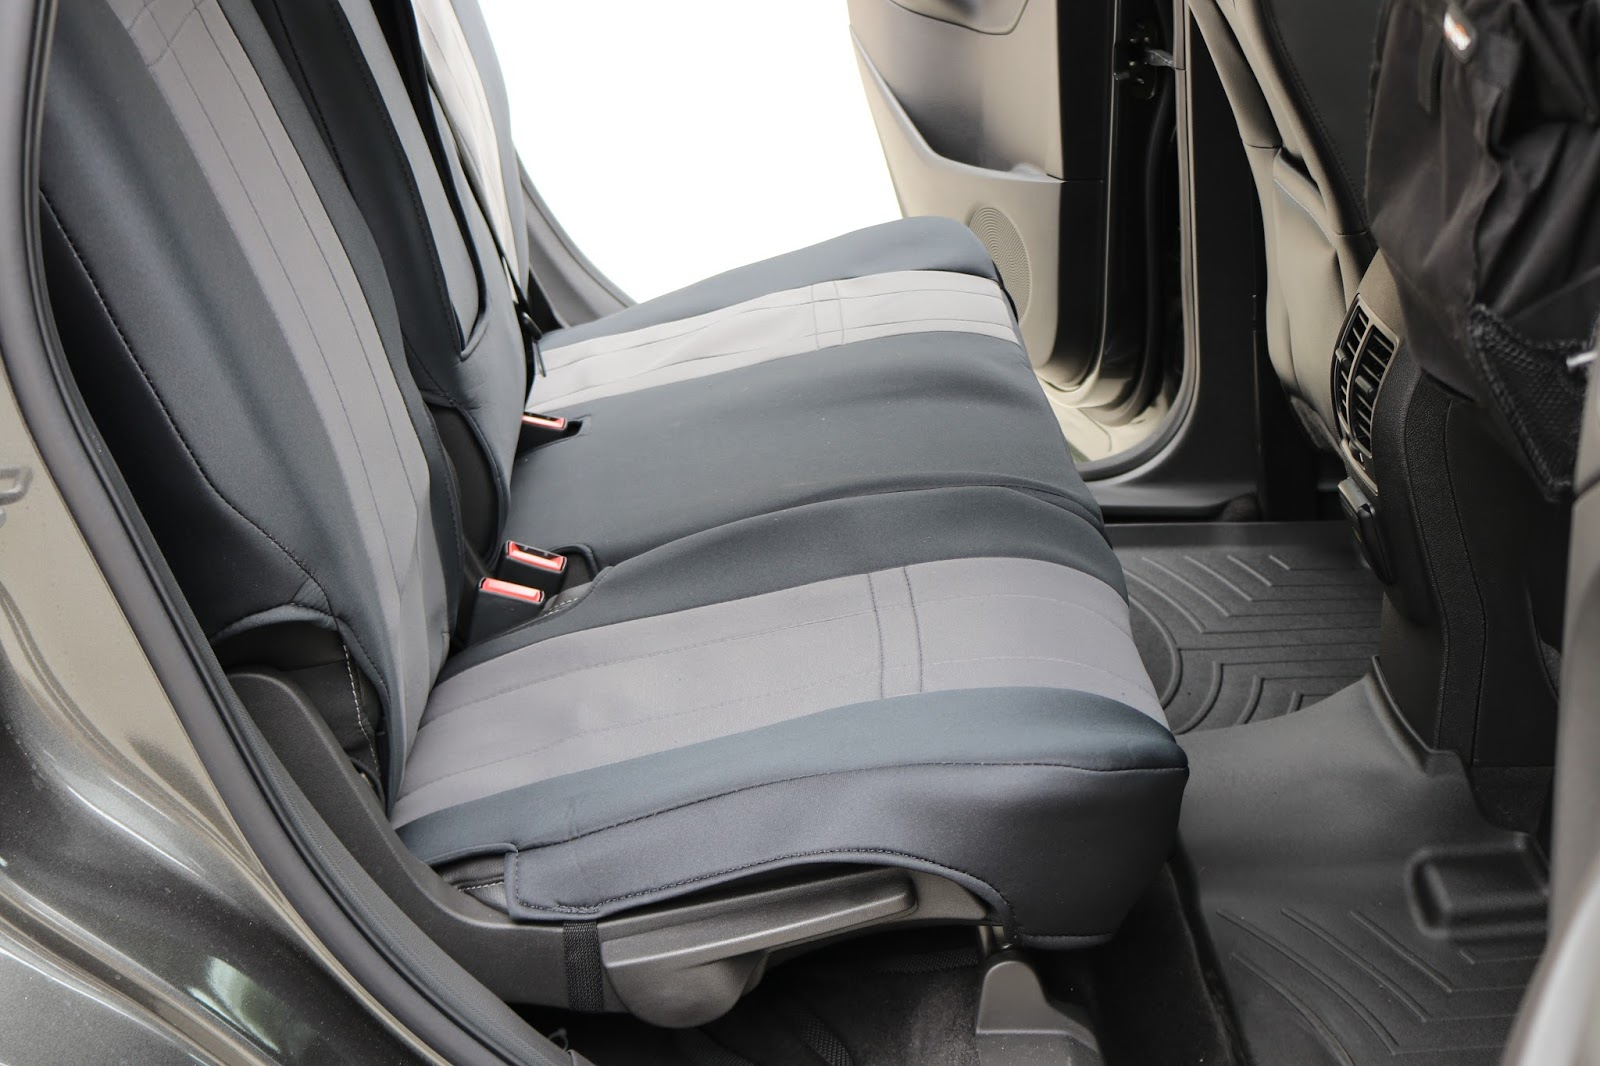 It took us about 30 minutes to install the CalTrend NeoSupreme rear bench seat cover in the Ford Escape. The seat cover provides a snug fit so it does not ... & Covering Classic Cars : 2017 Ford Escape Custom Fit Vehicle ... markmcfarlin.com